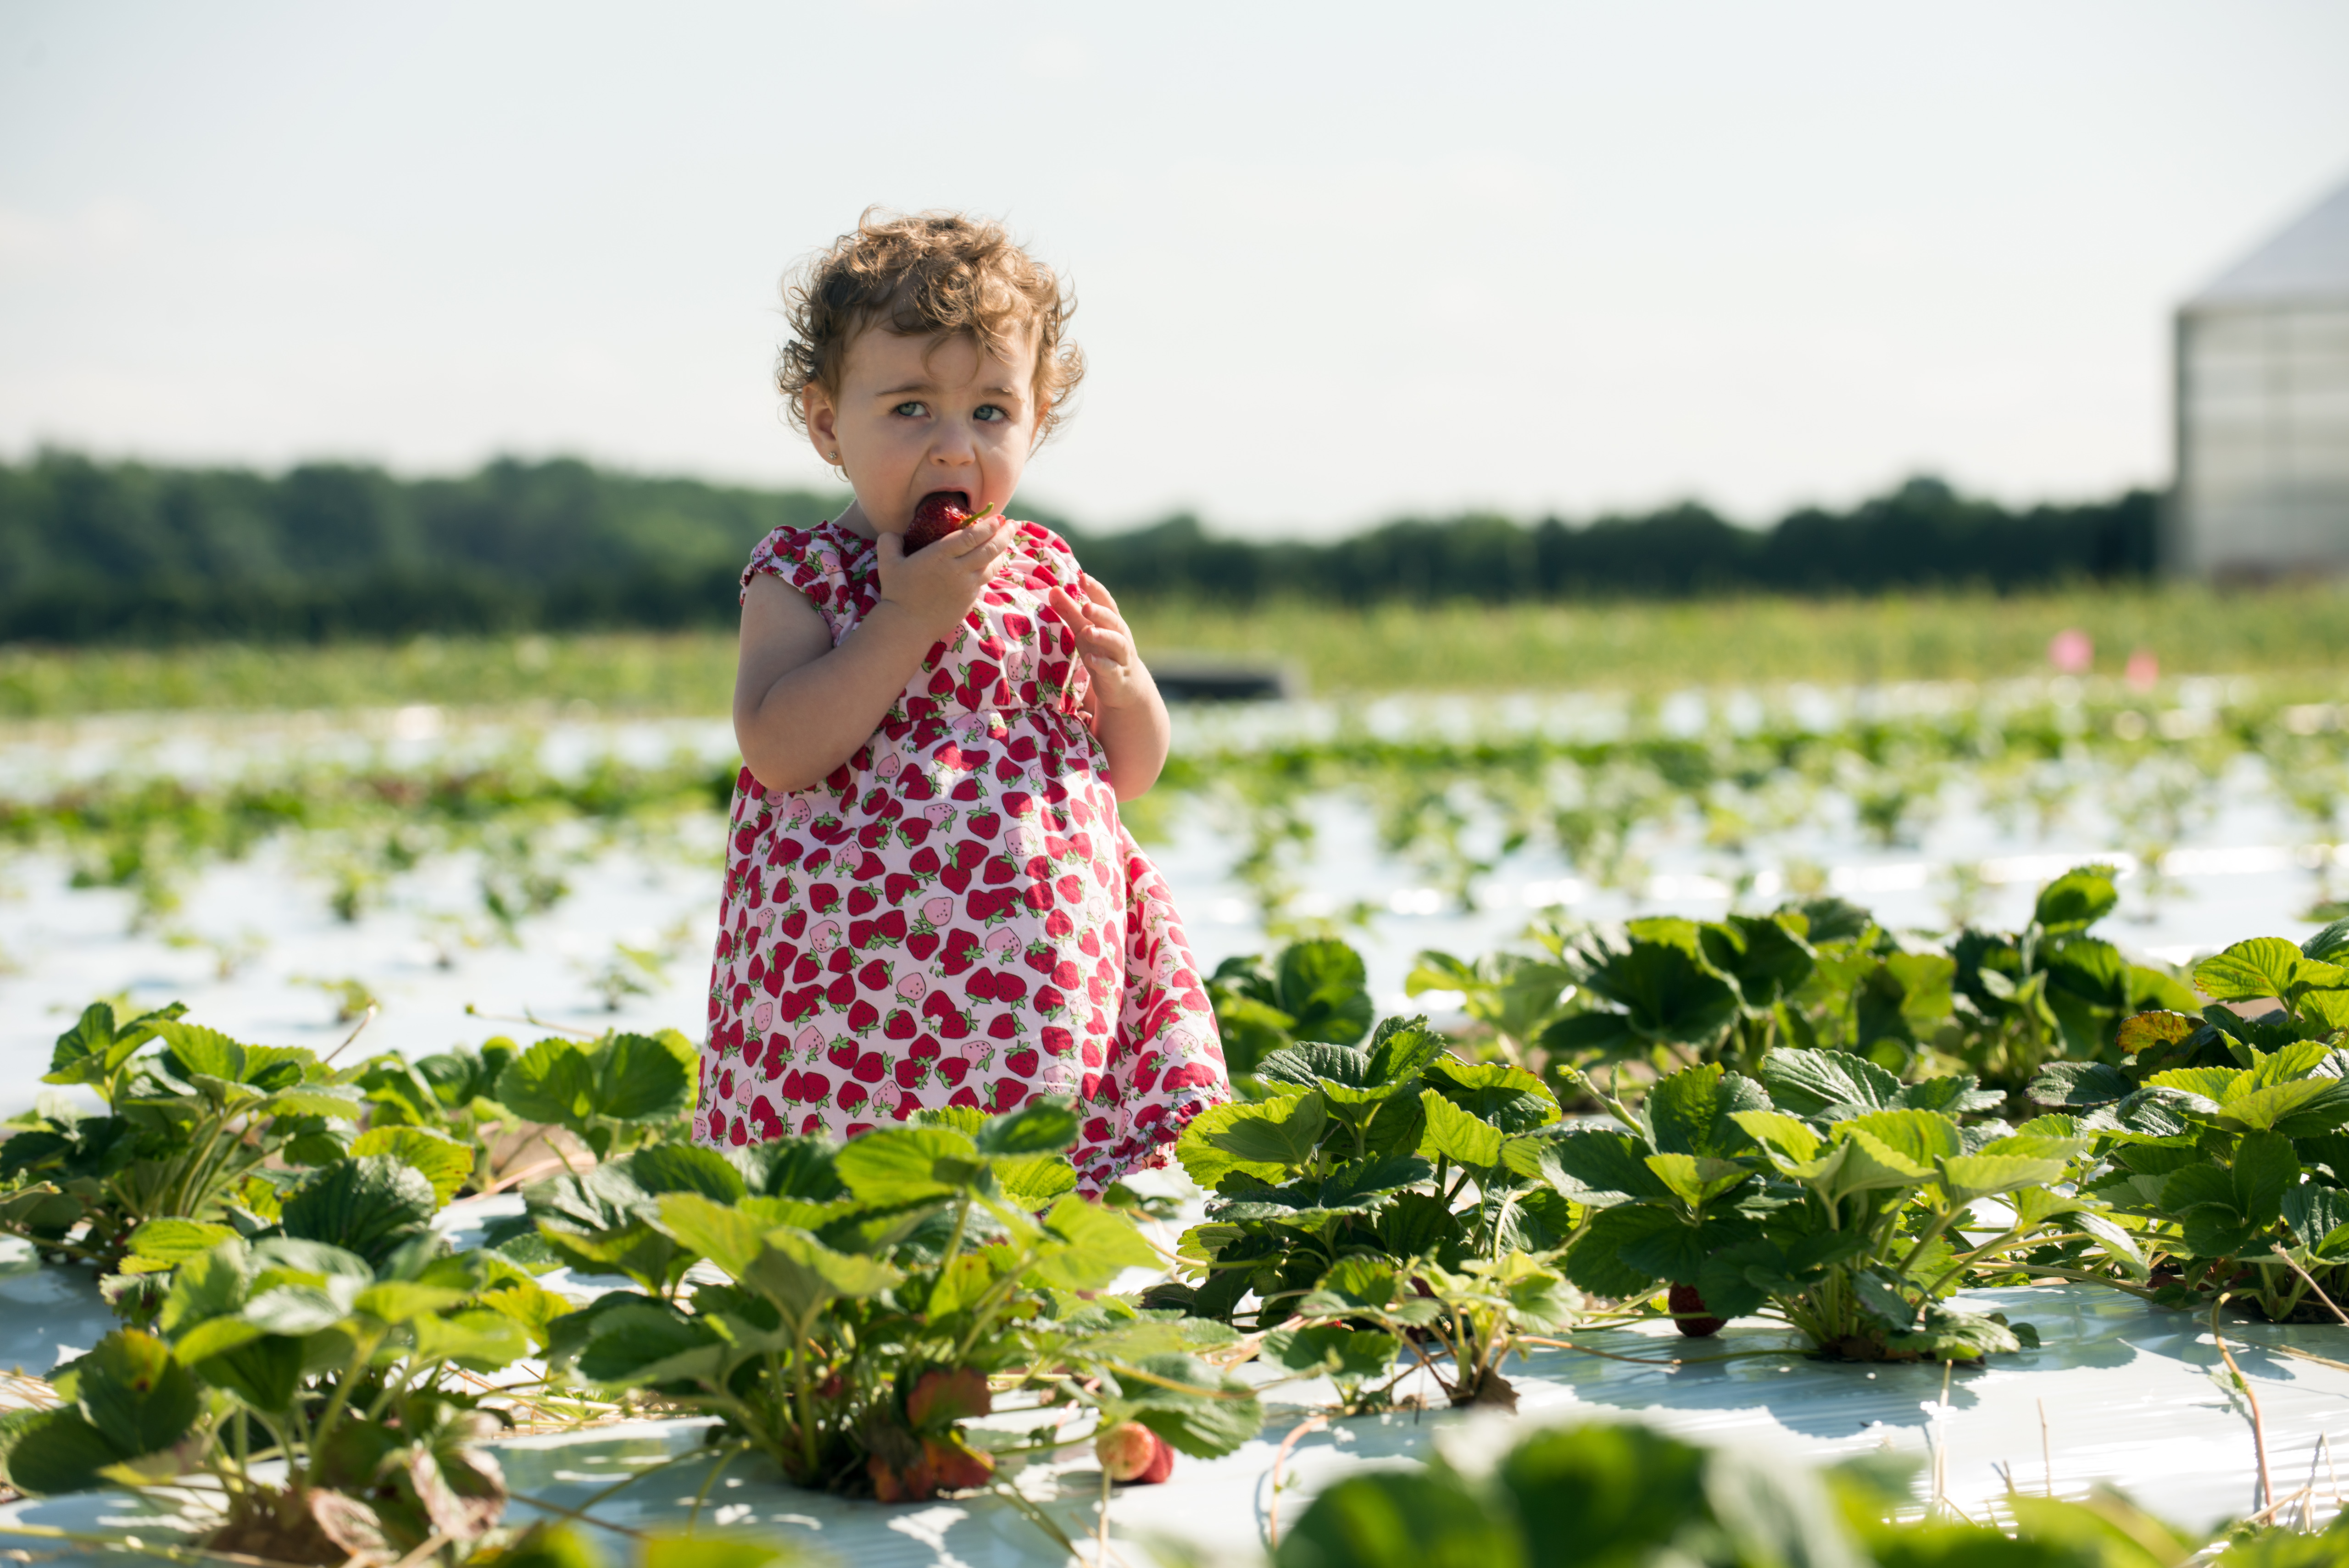 Young girl eating a strawberry